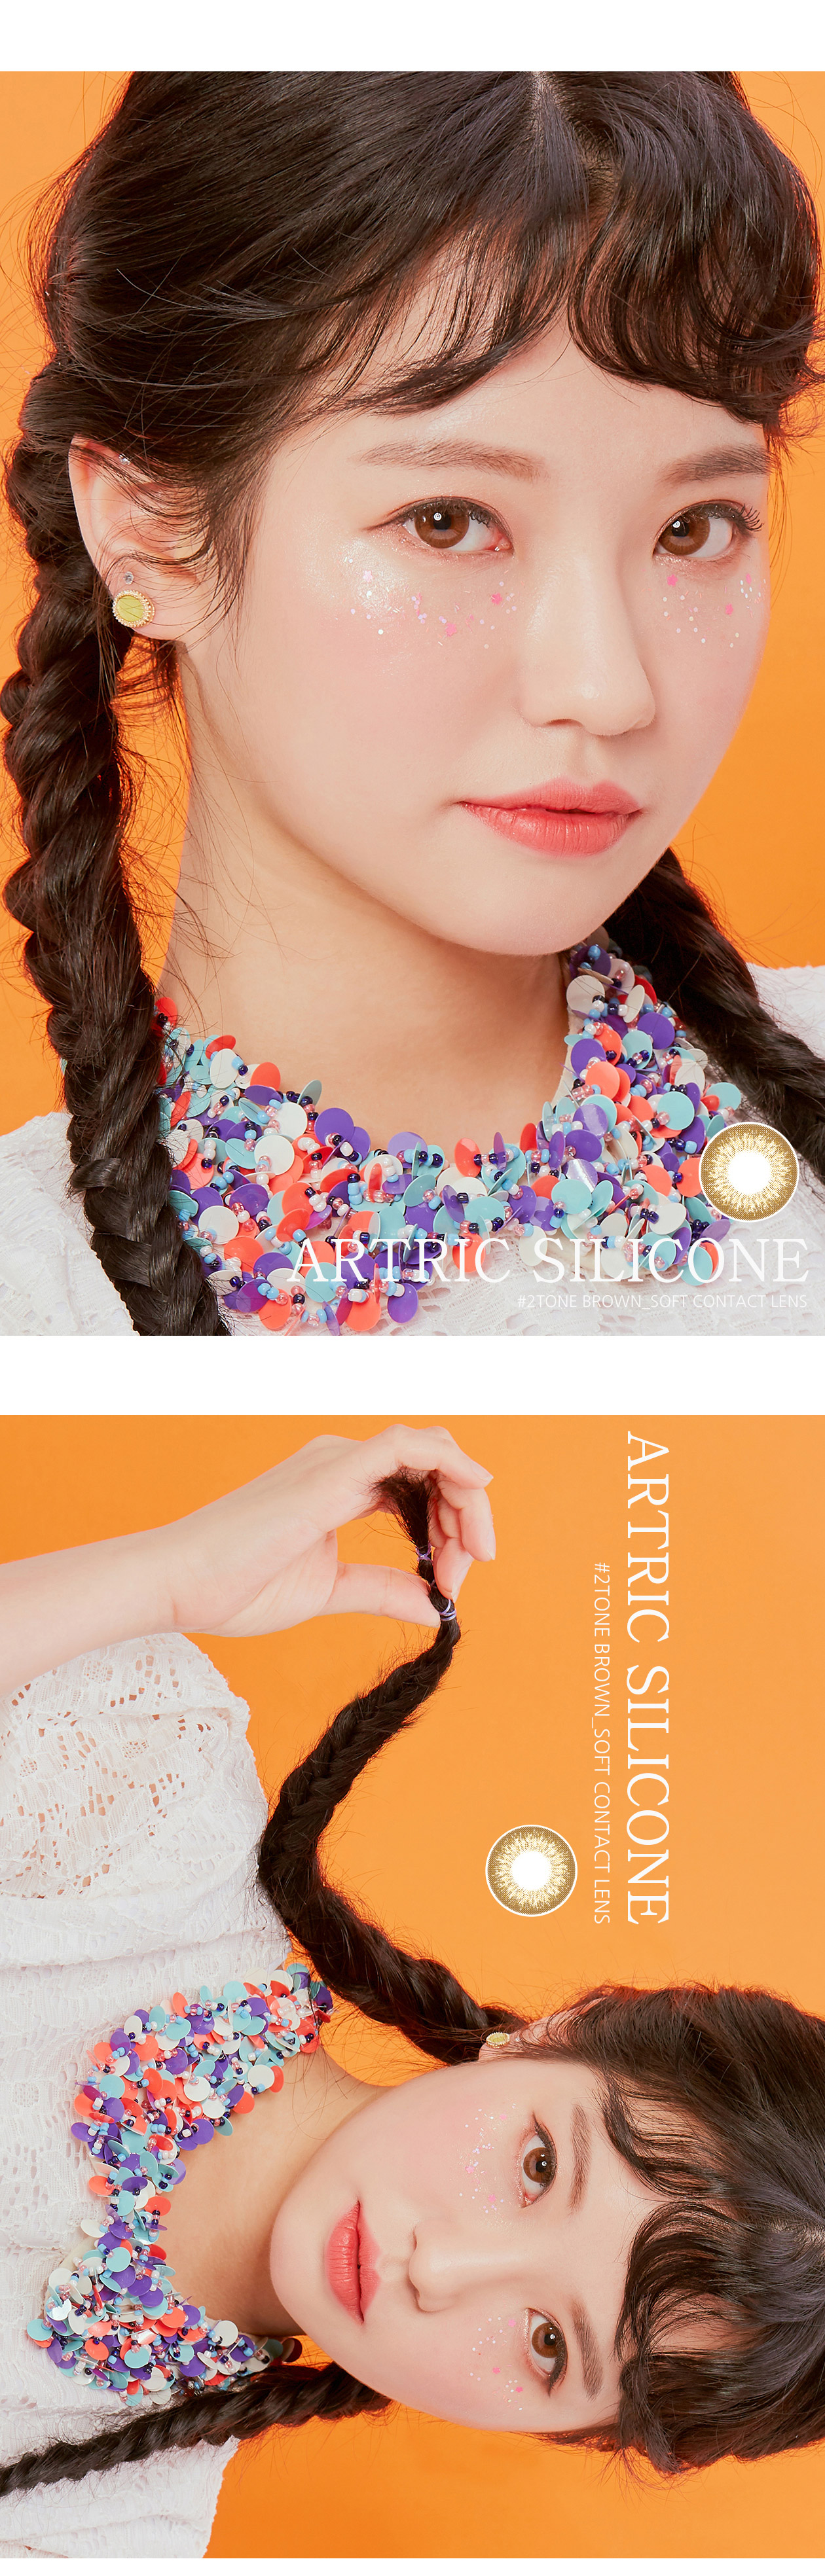 silicone-artric-brown-monthly-circle-lenses2.jpg